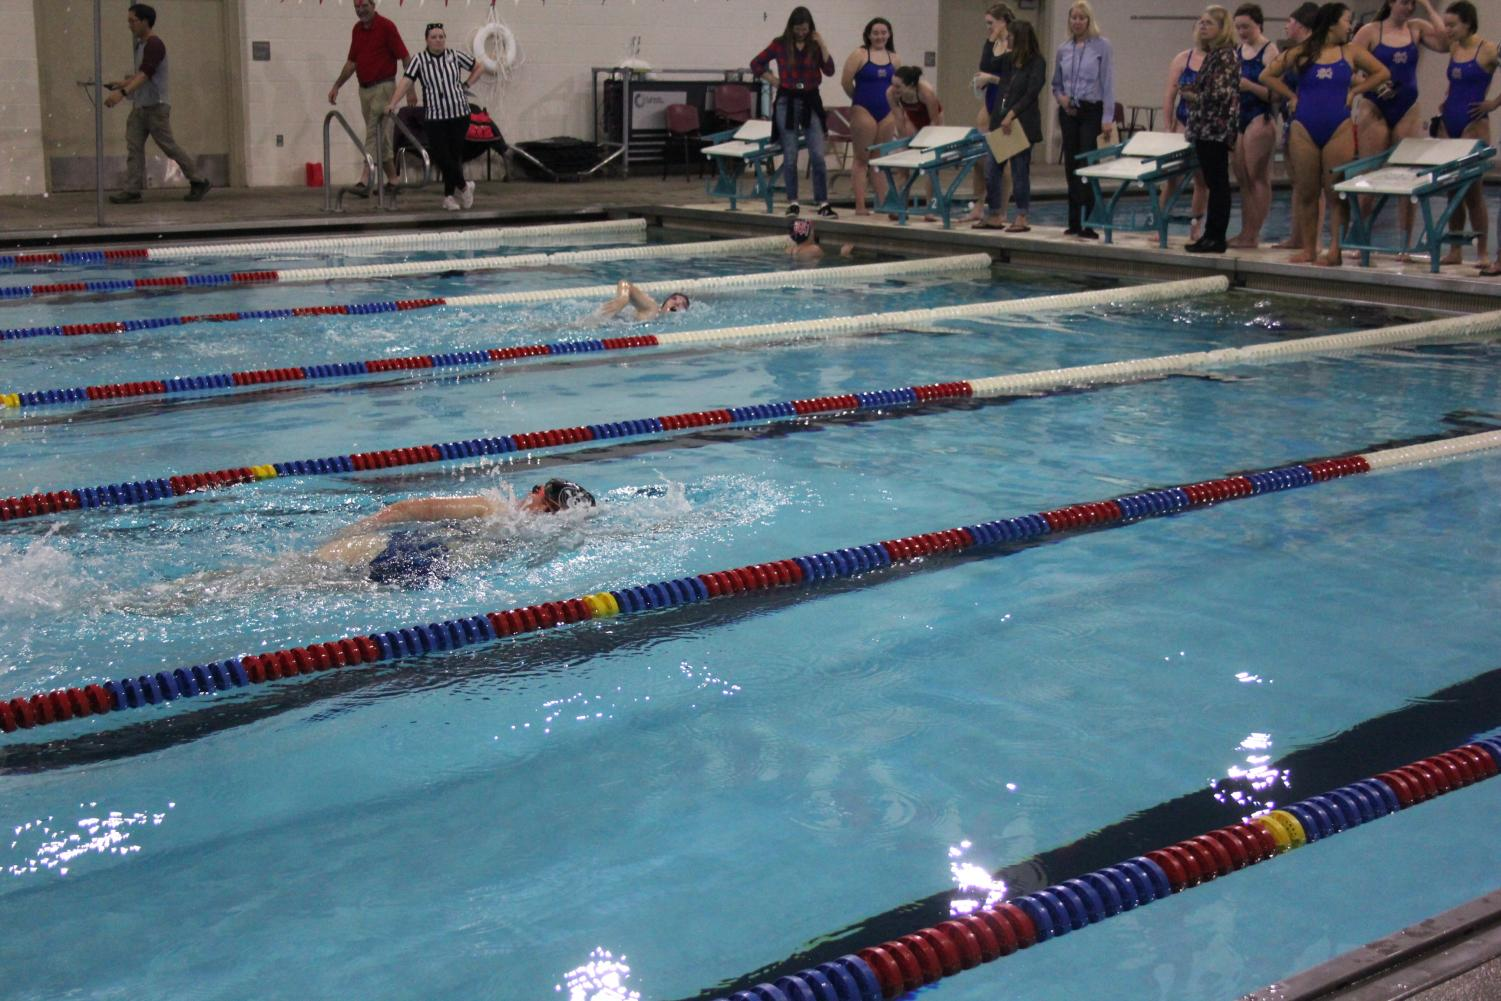 It+is+hard+to+push+through+the+water+when+you+know+you+have+another+lap+ahead+of+you.+But+swimmers+learn+to+pace+themselves.+